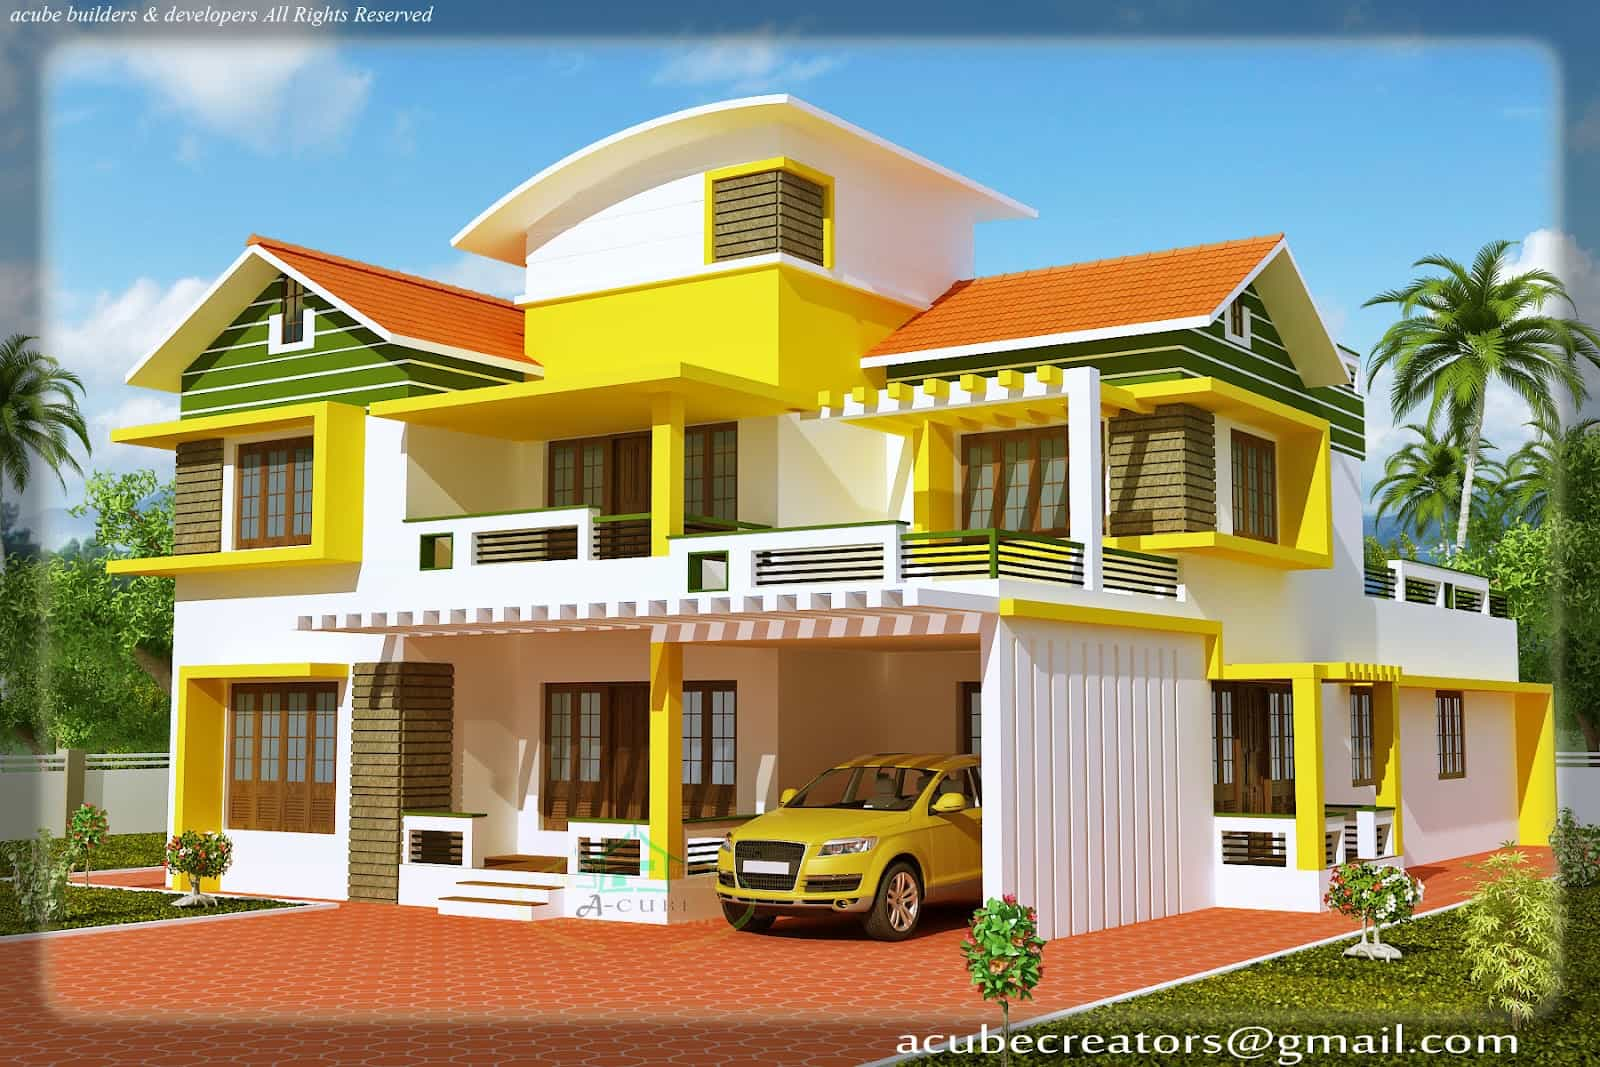 Kerala house model keralahouseplanner Latest model houses